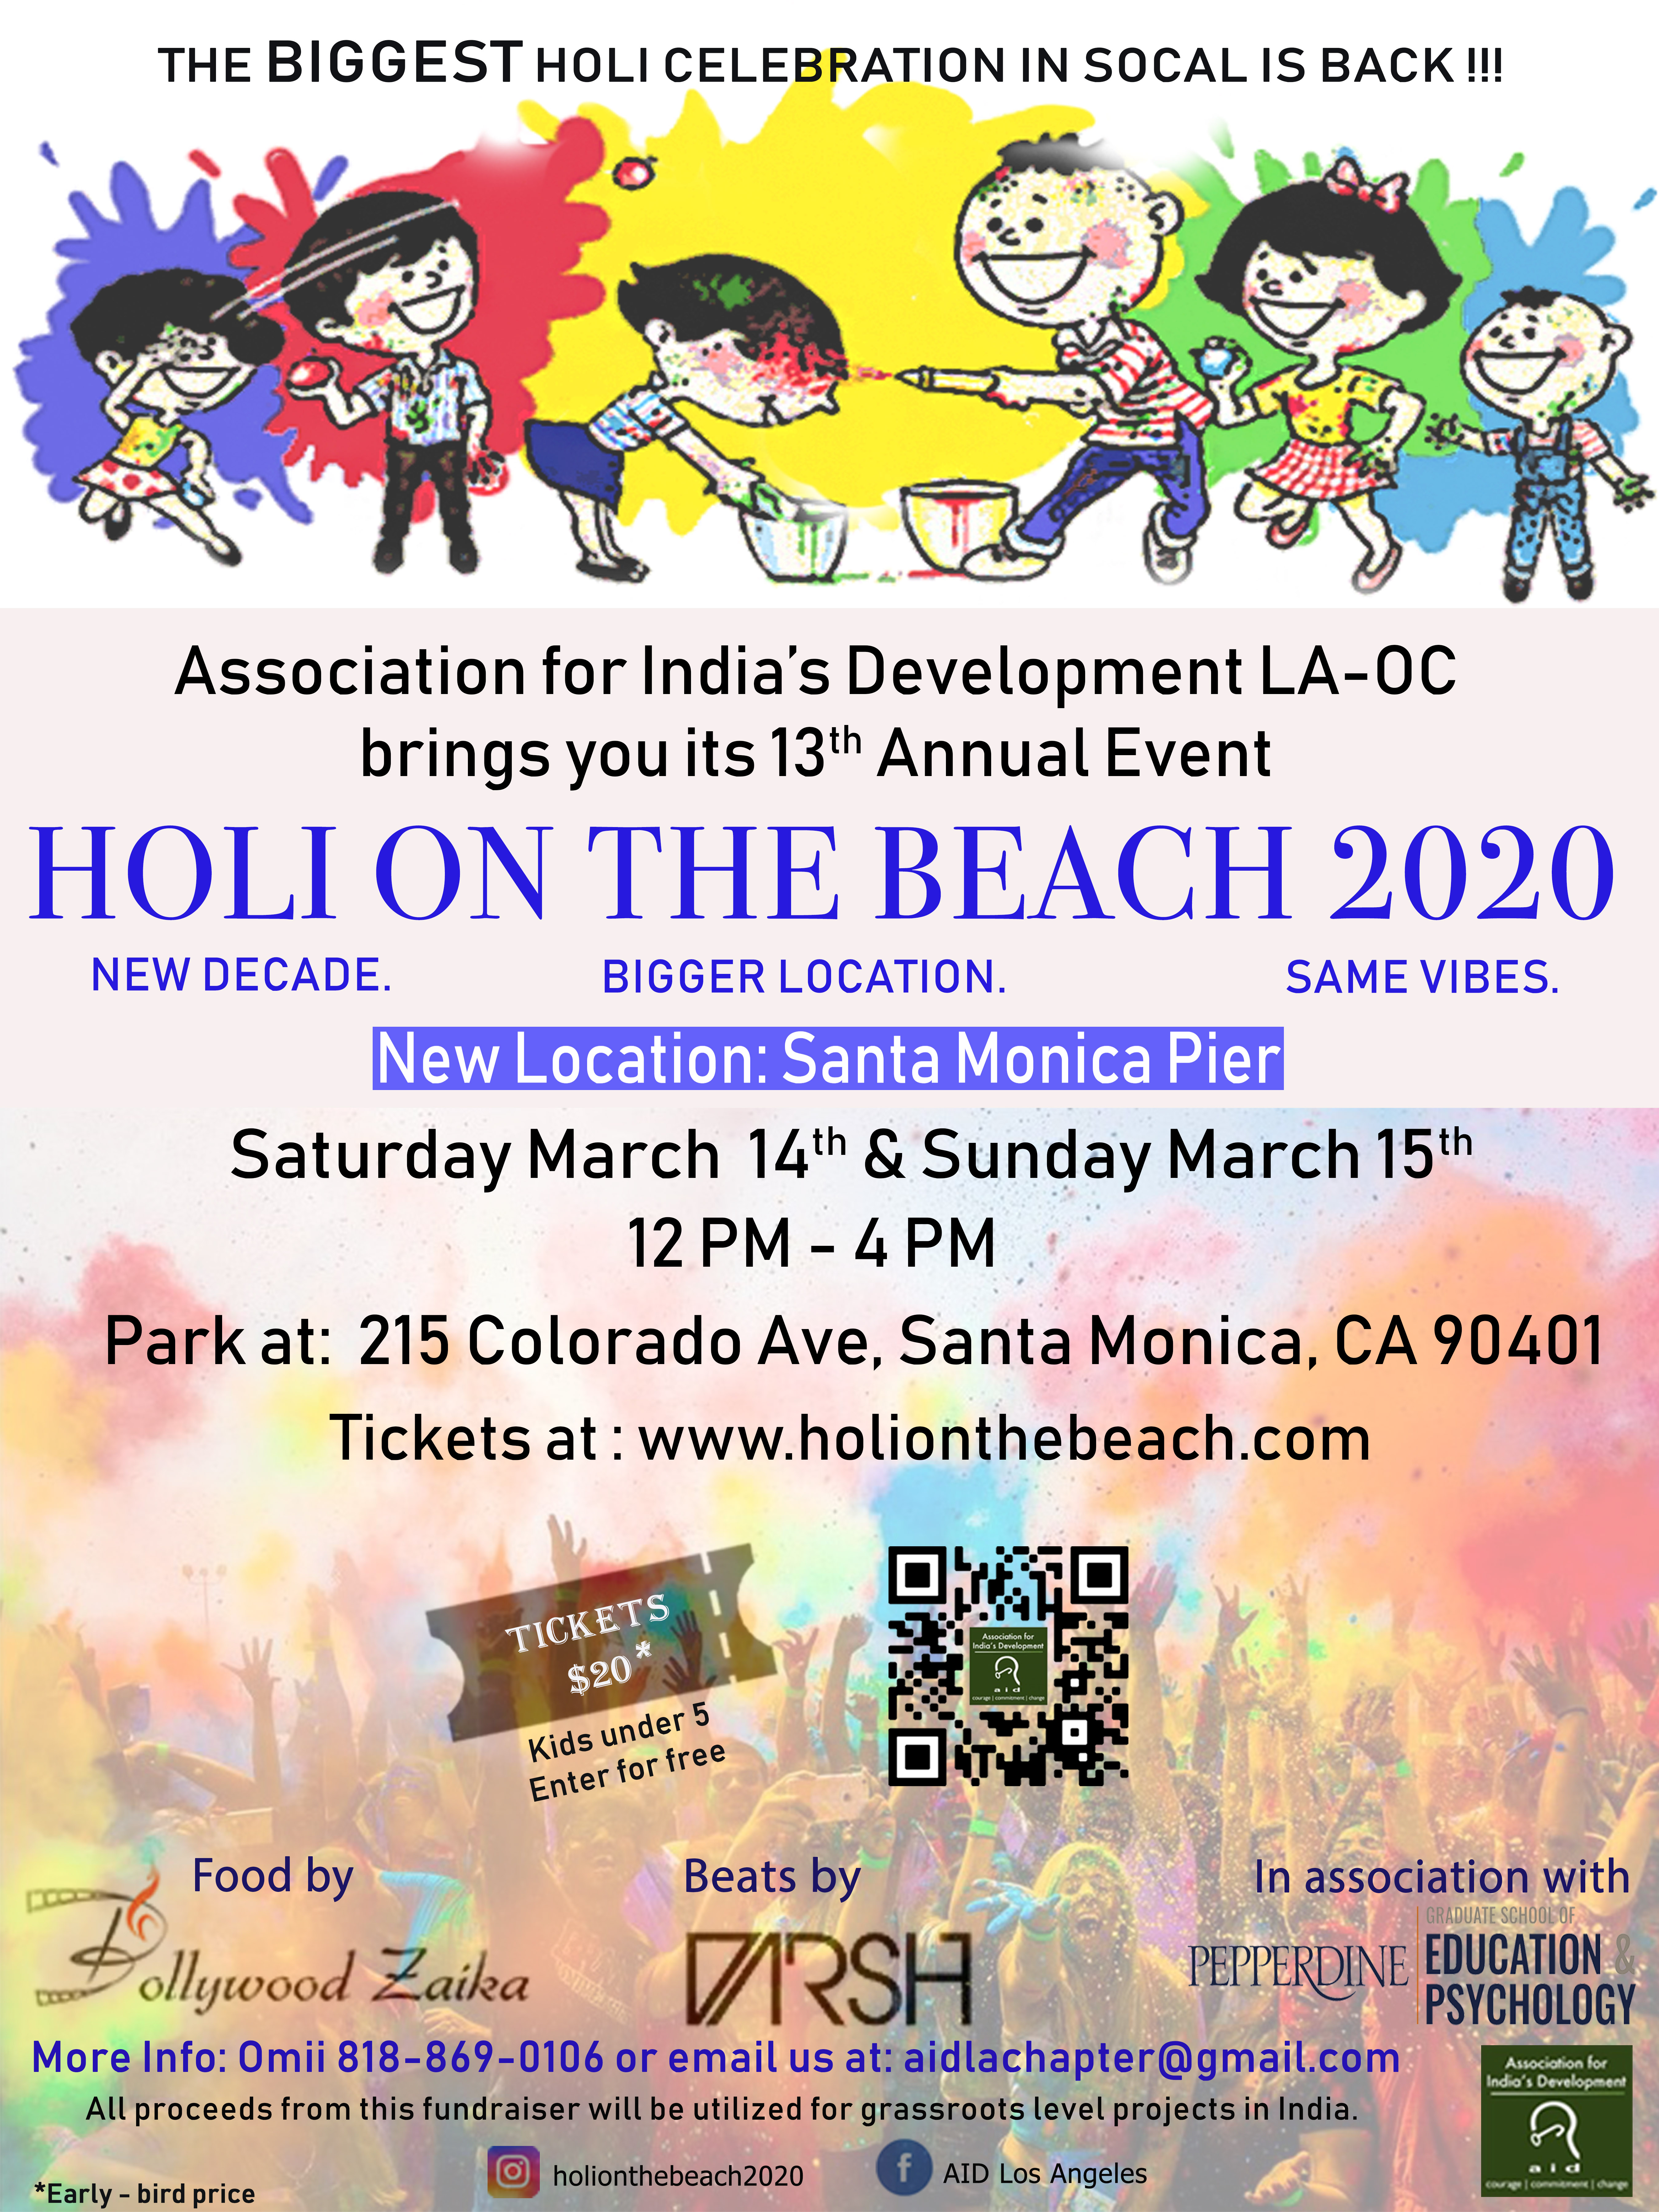 Holi on the Beach 2020 (Festival Of Colors LA-OC)  Sunday, March 15th